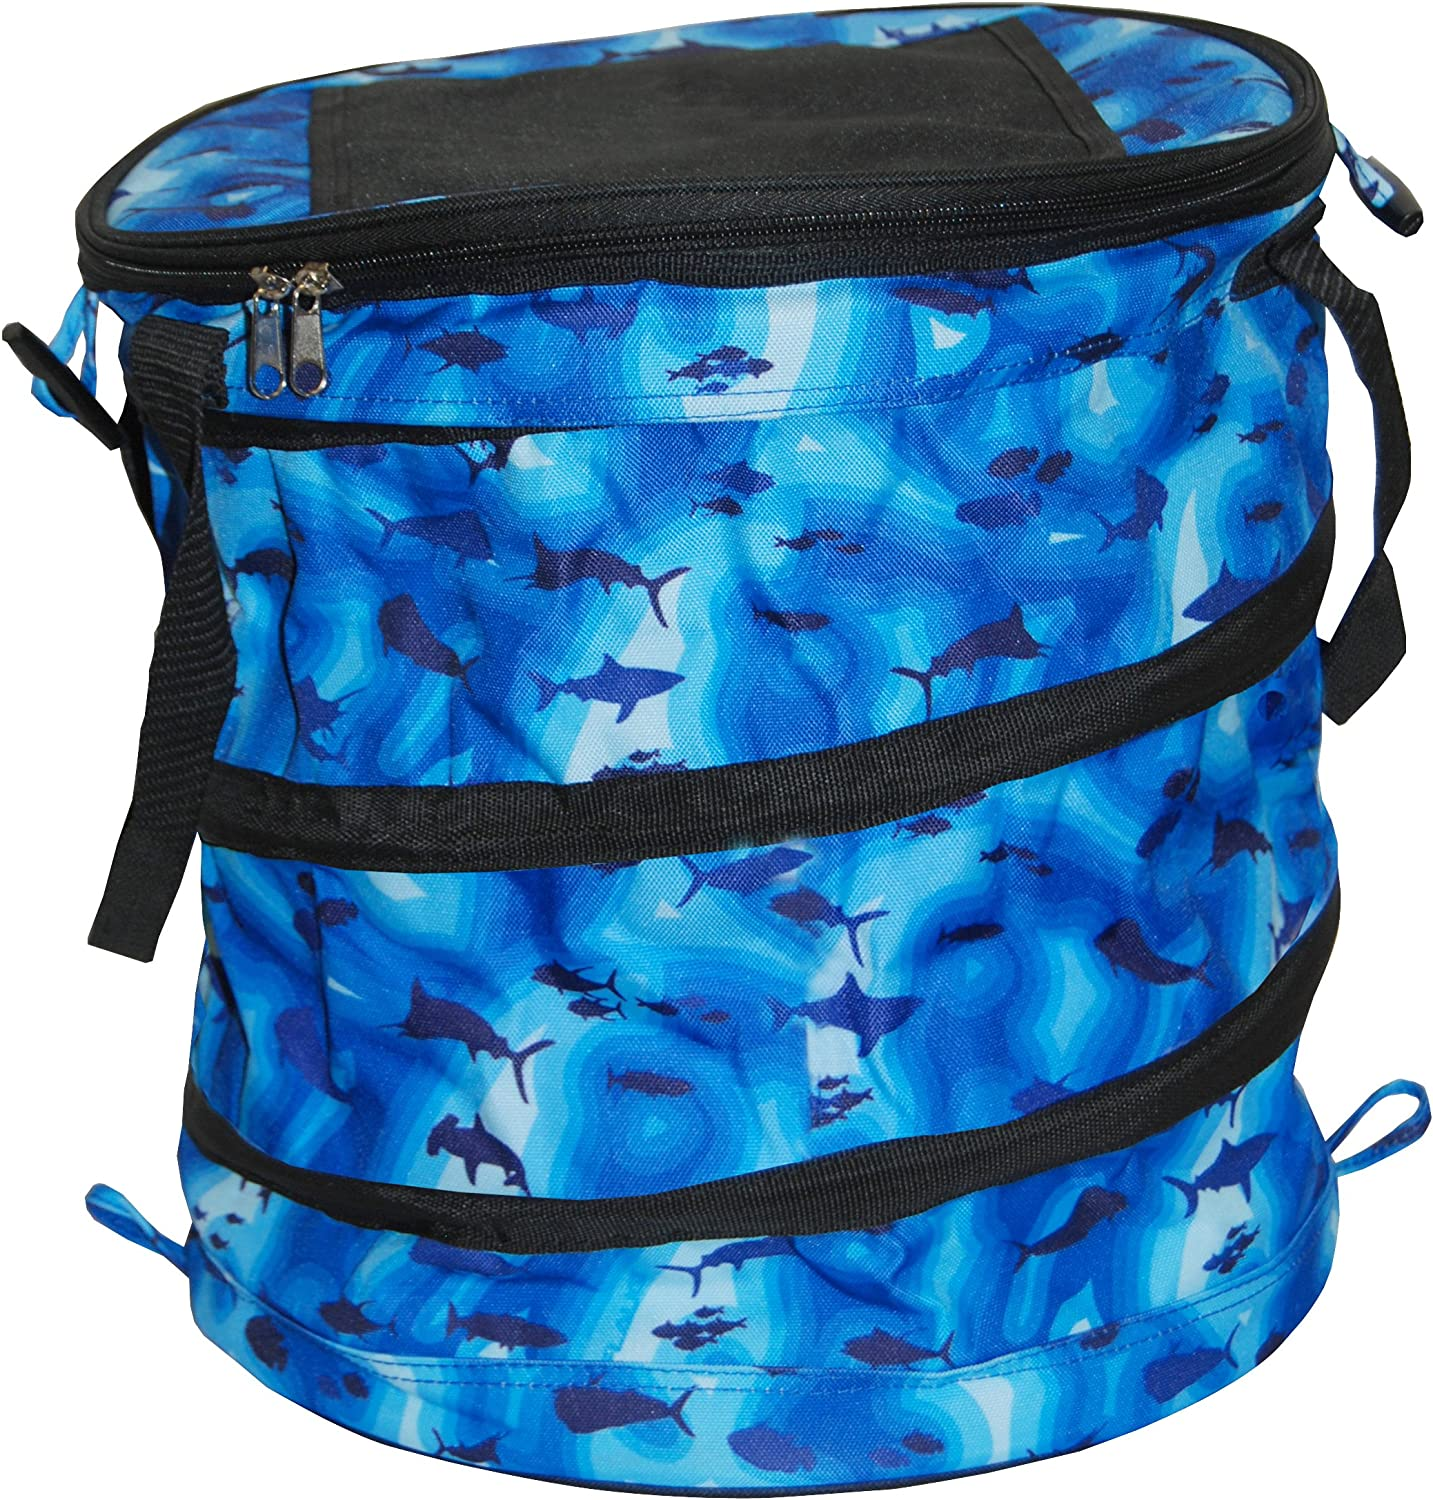 Taylor Made Products Collapsible Cooler, 8 Liter, Zippered Top, Velcro Access Hatch 91uvO4AEm5L